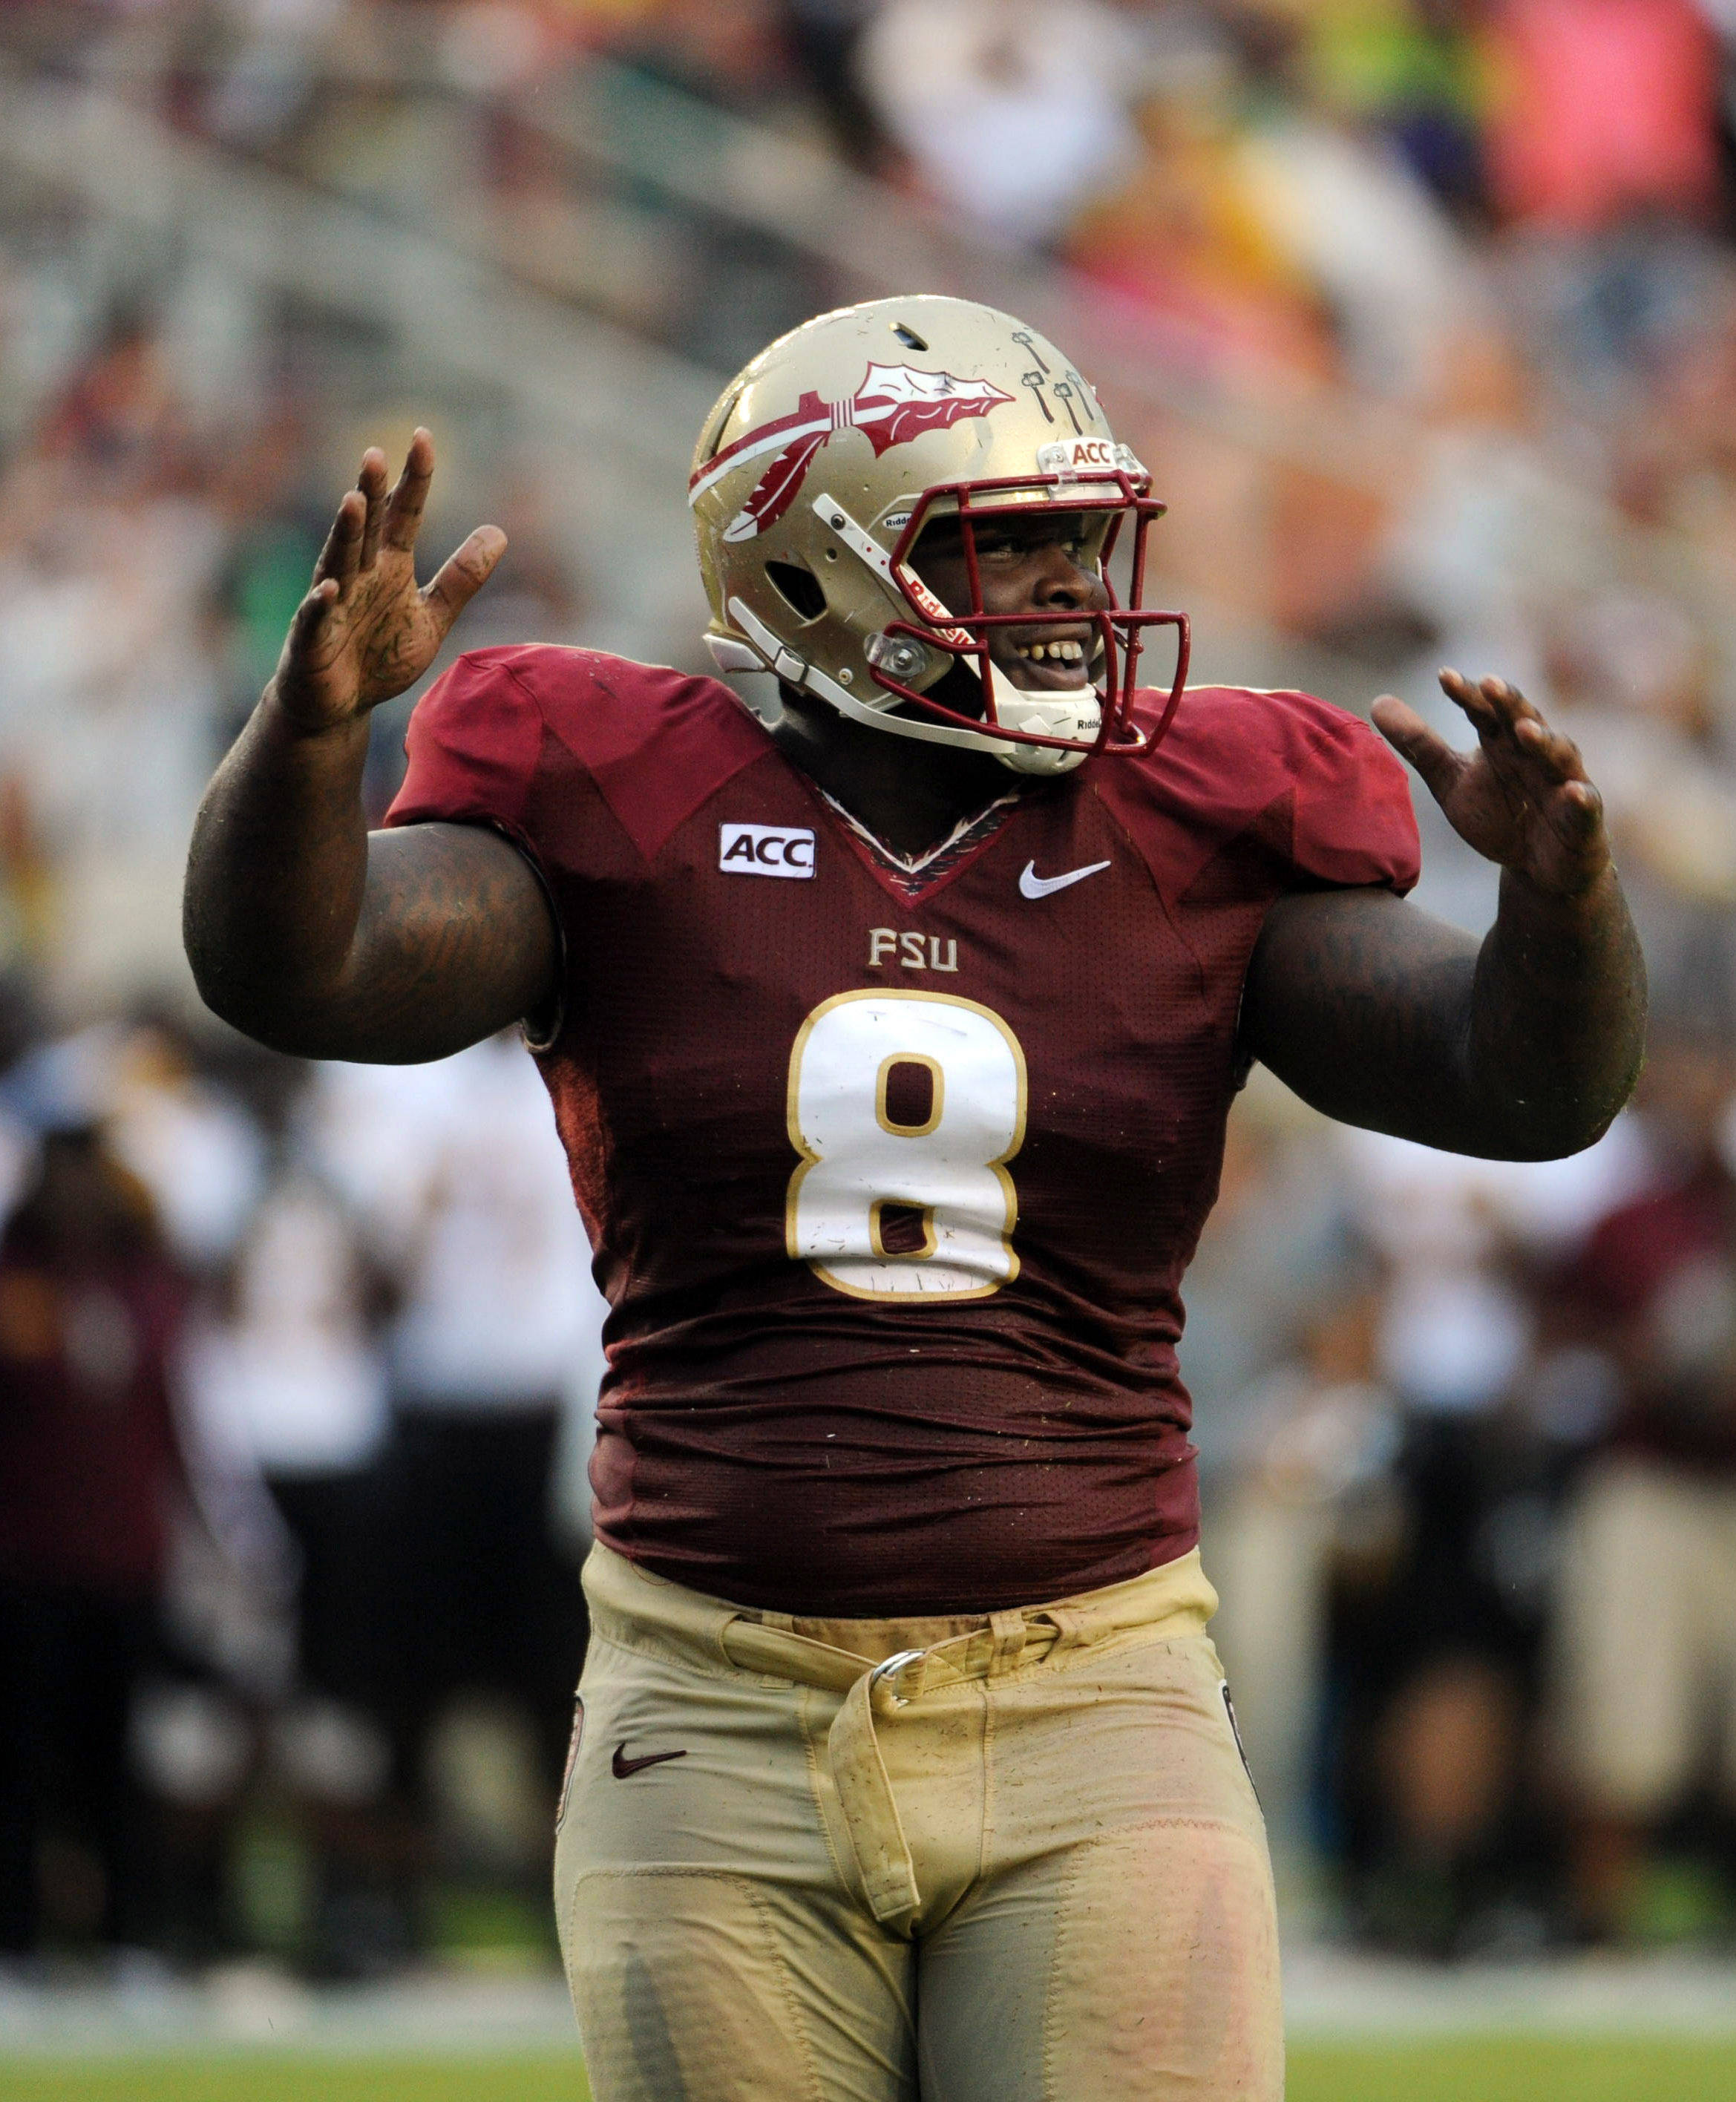 Florida State Seminoles defensive tackle Timmy Jernigan (8) celebrates a safety during the first half of the game against the Bethune-Cookman Wildcats. (Melina Vastola-USA TODAY Sports)